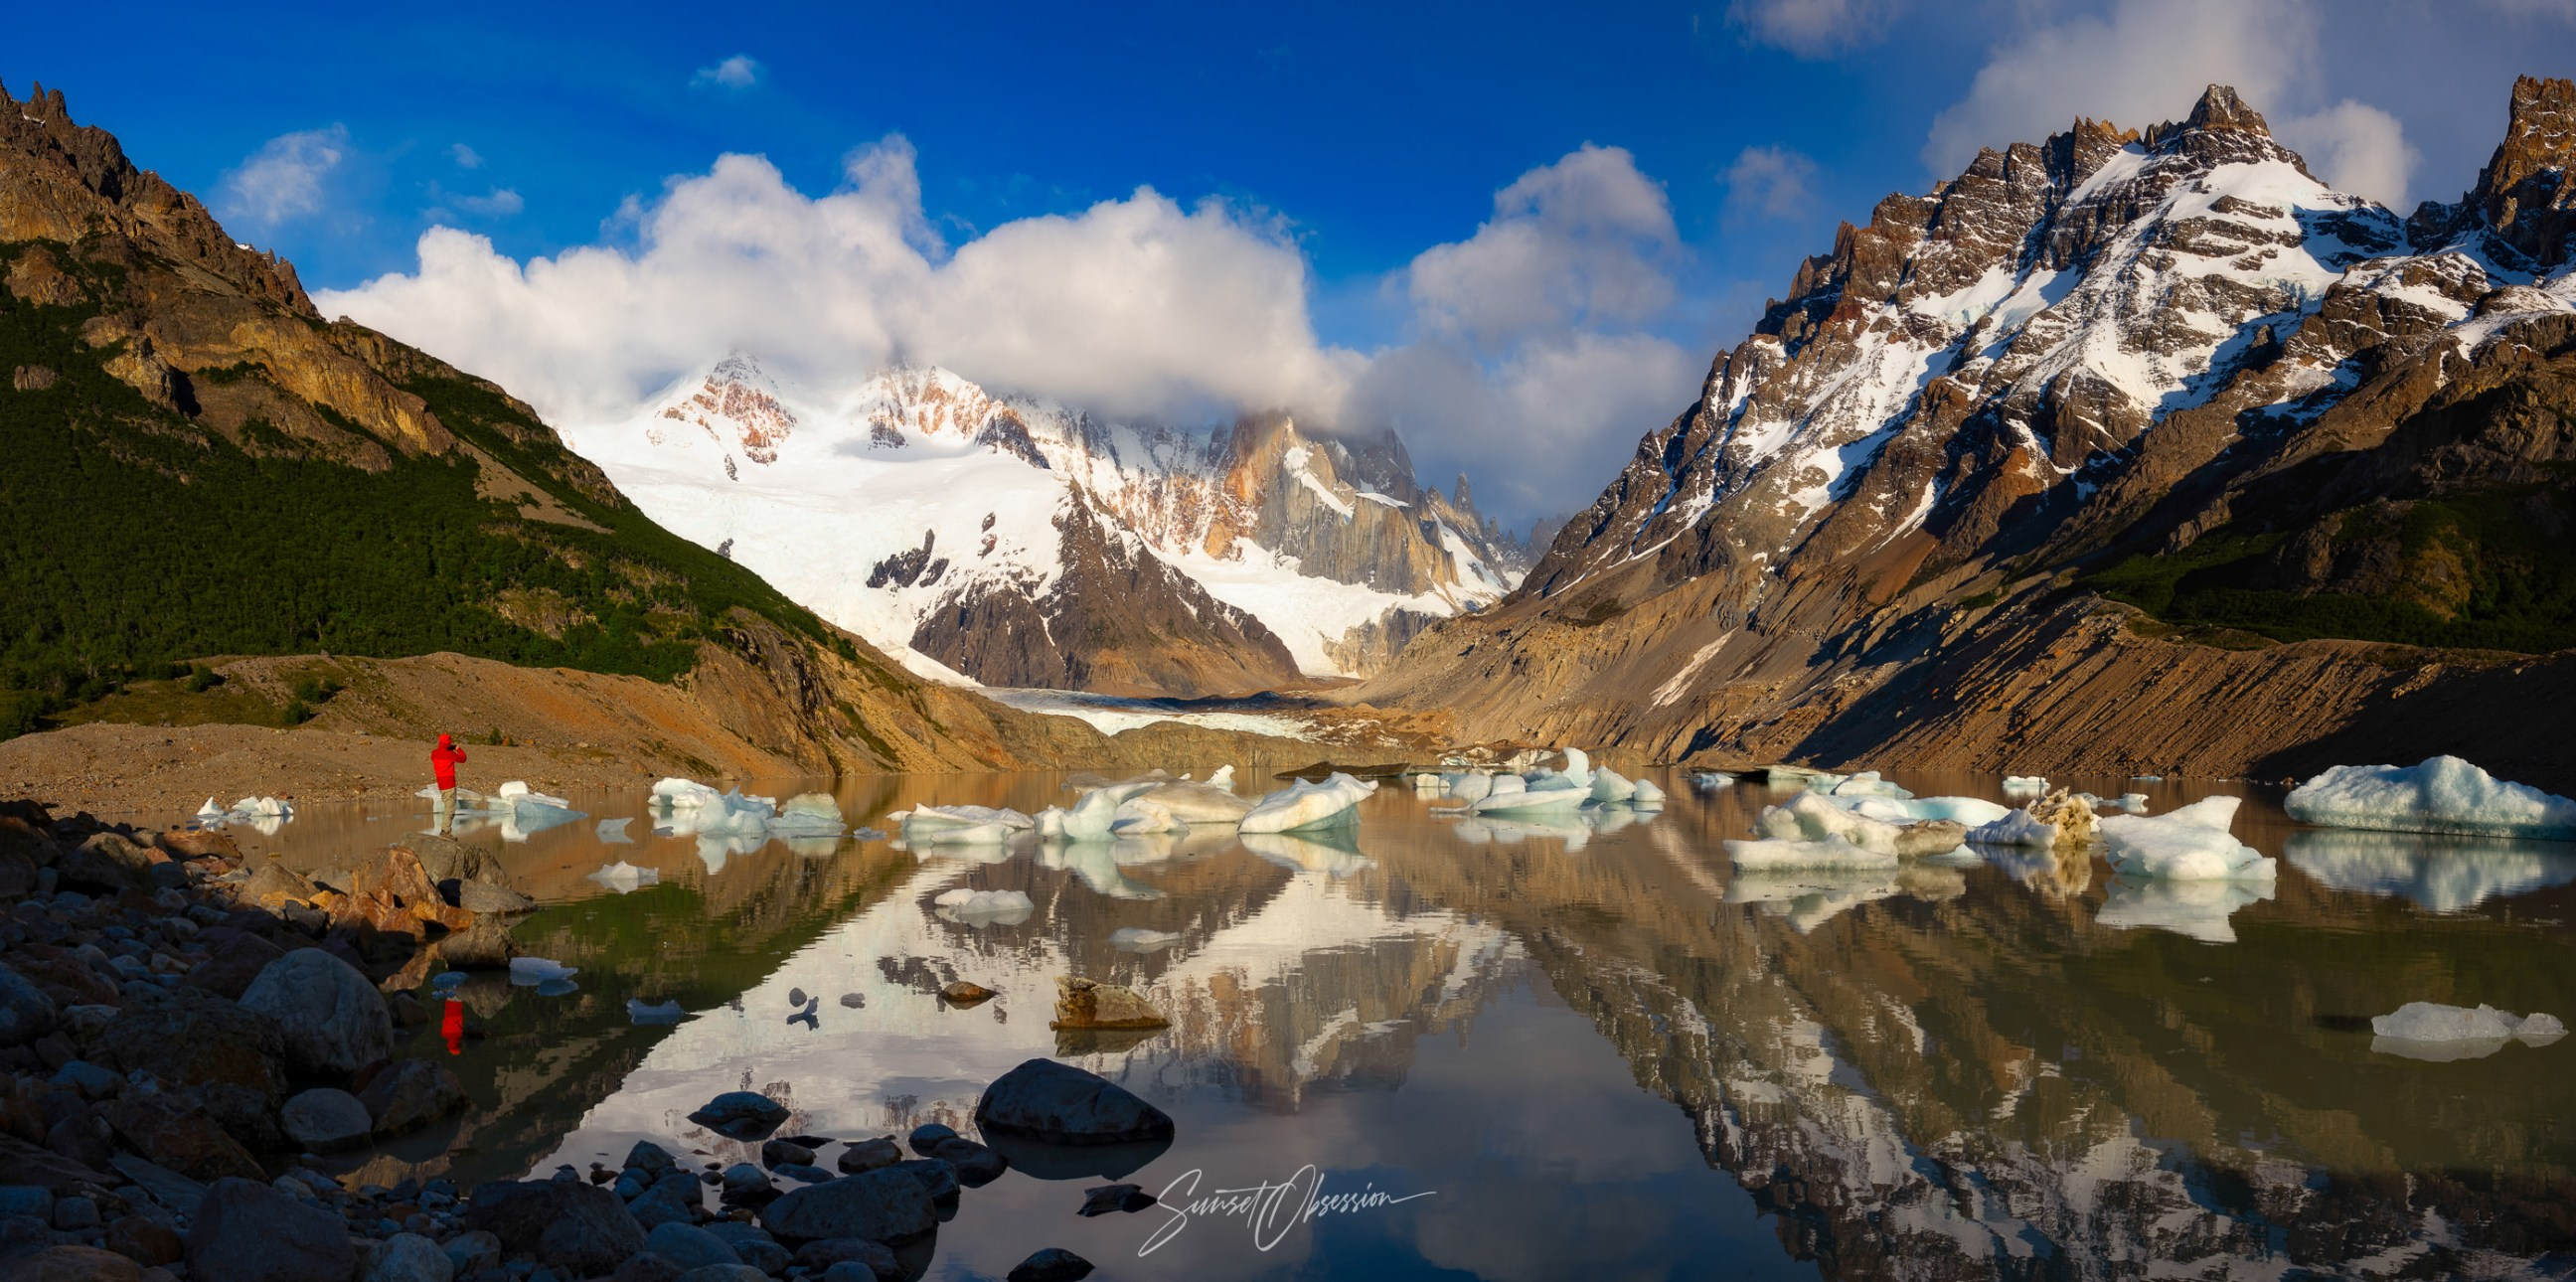 Early morning after a beautiful sunrise on Laguna Torre, Argentinean Patagonia